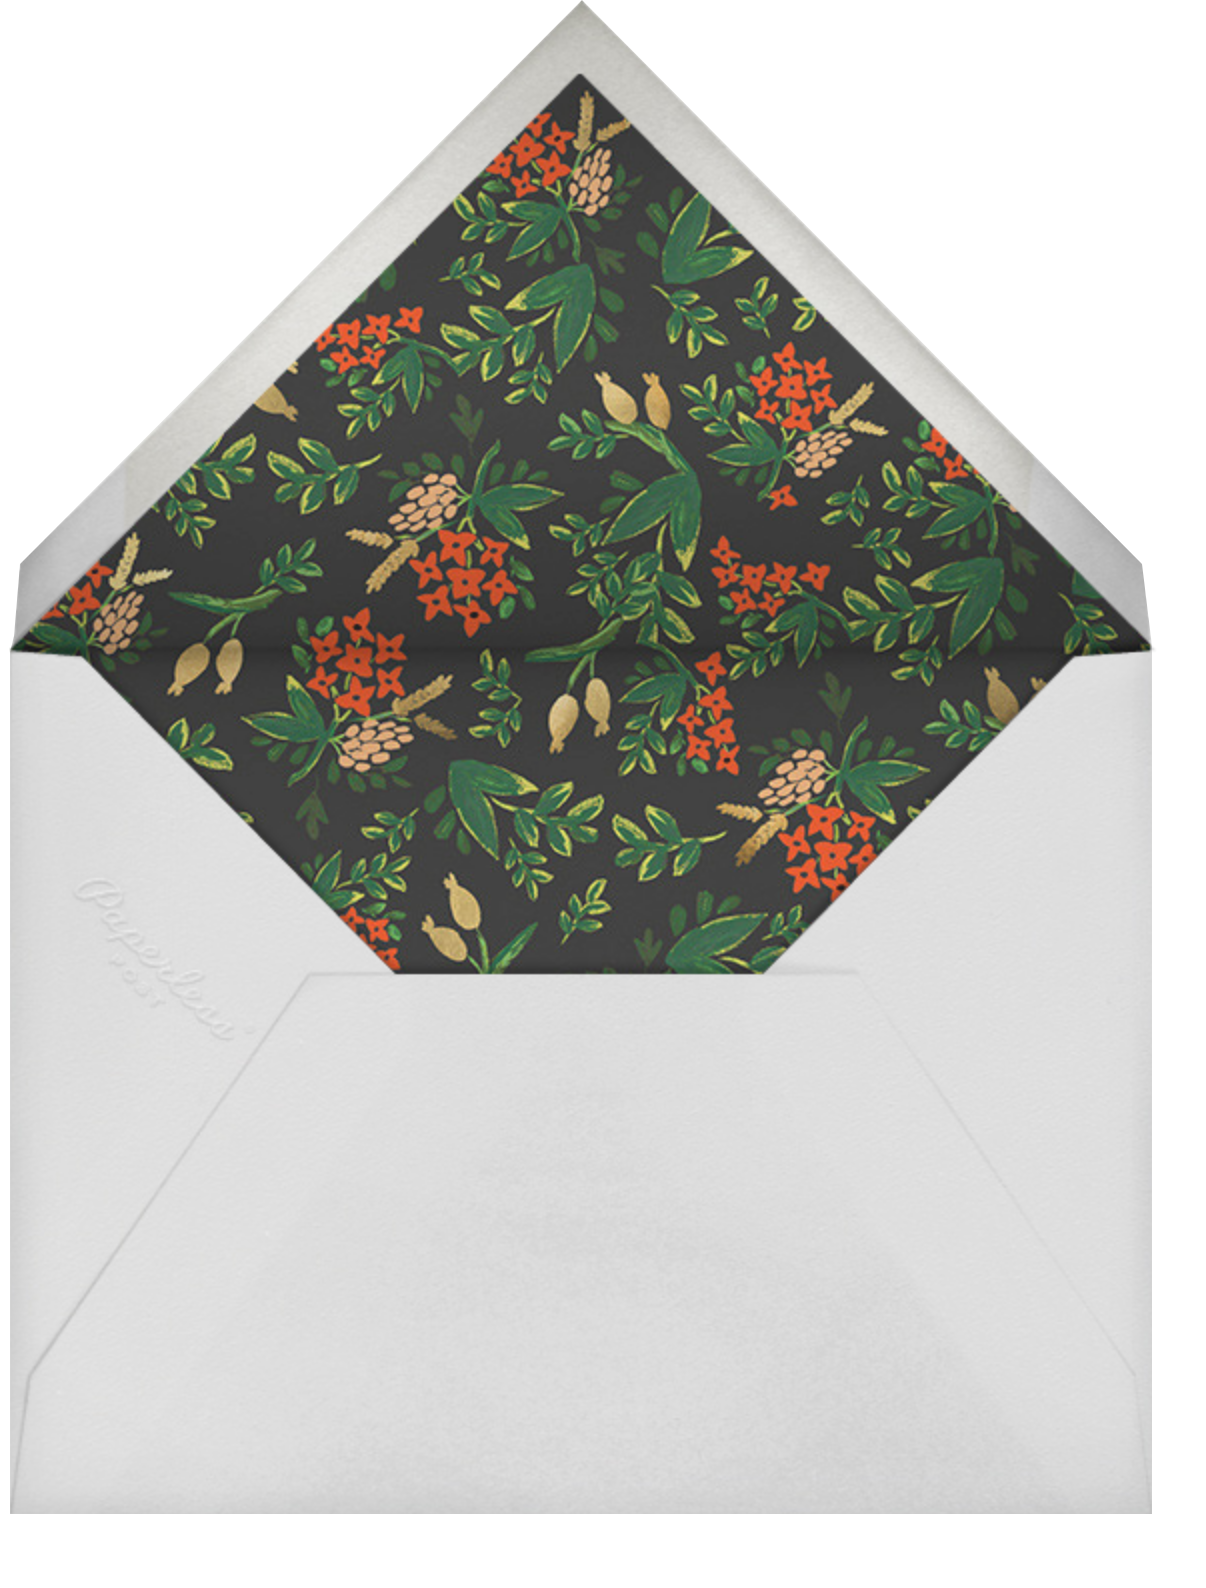 Poinsettia Garland Photo - Rifle Paper Co. - Holiday cards - envelope back